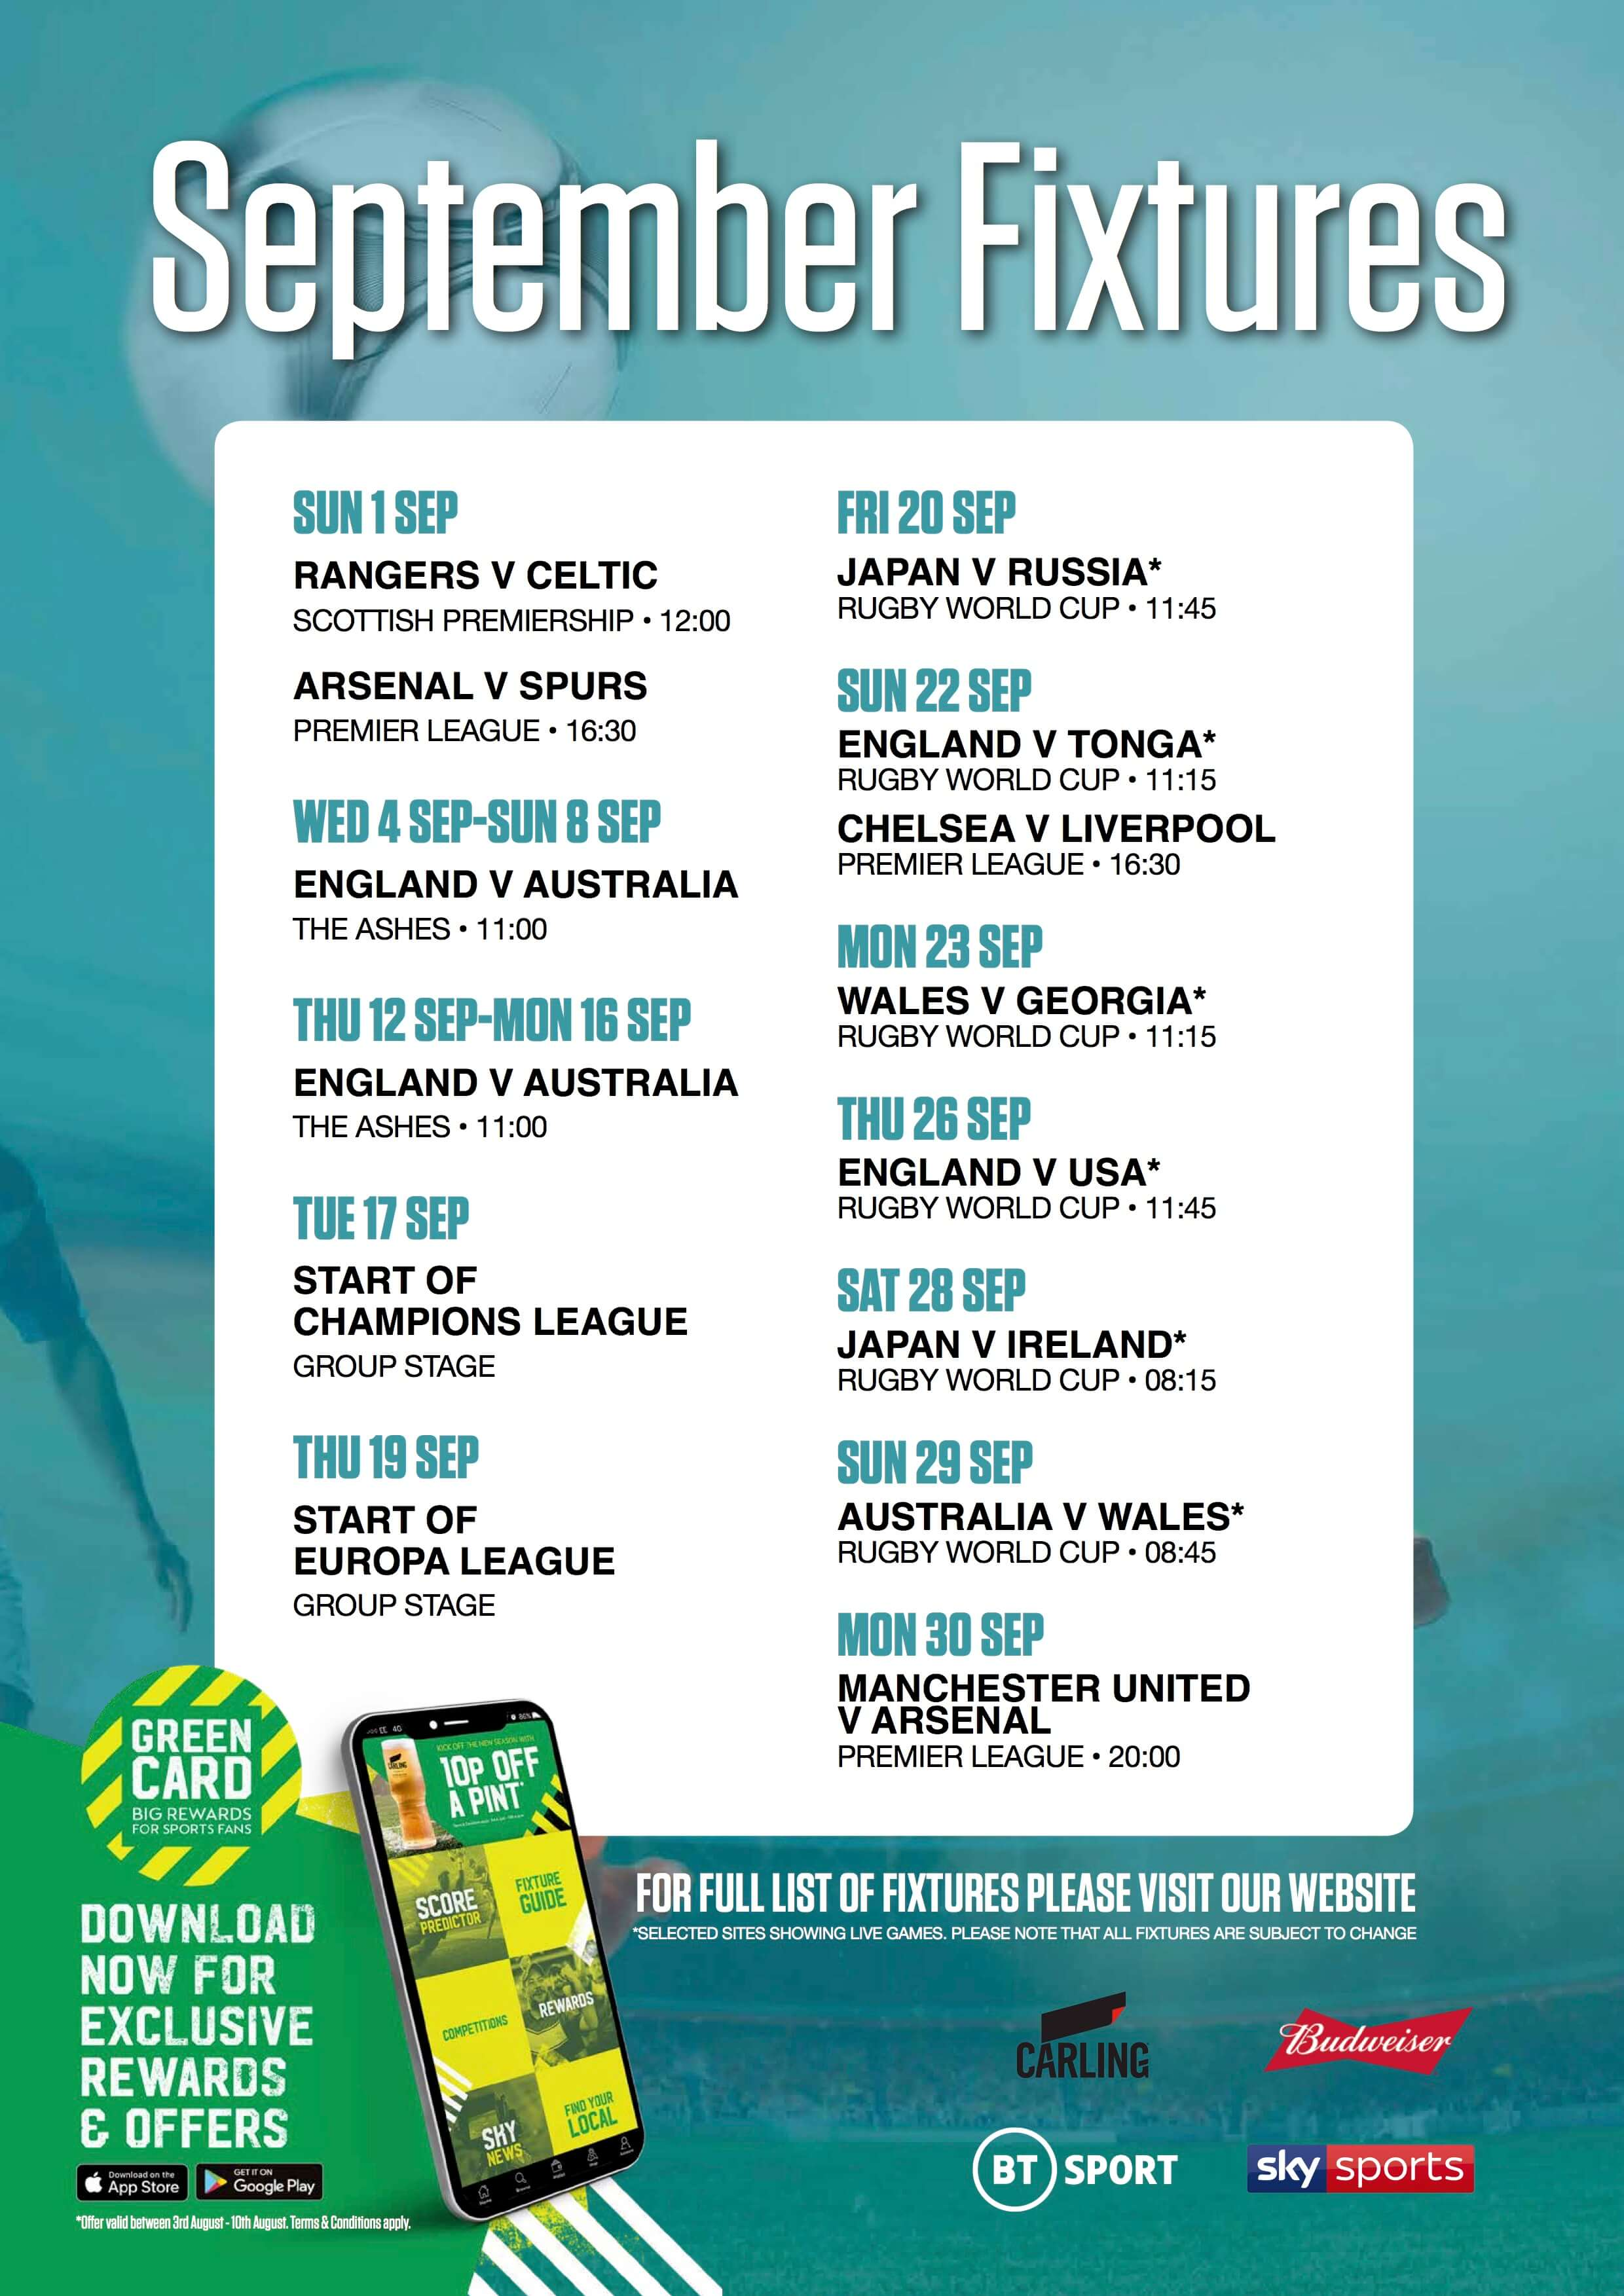 Live sports fixtures in January at The Ship